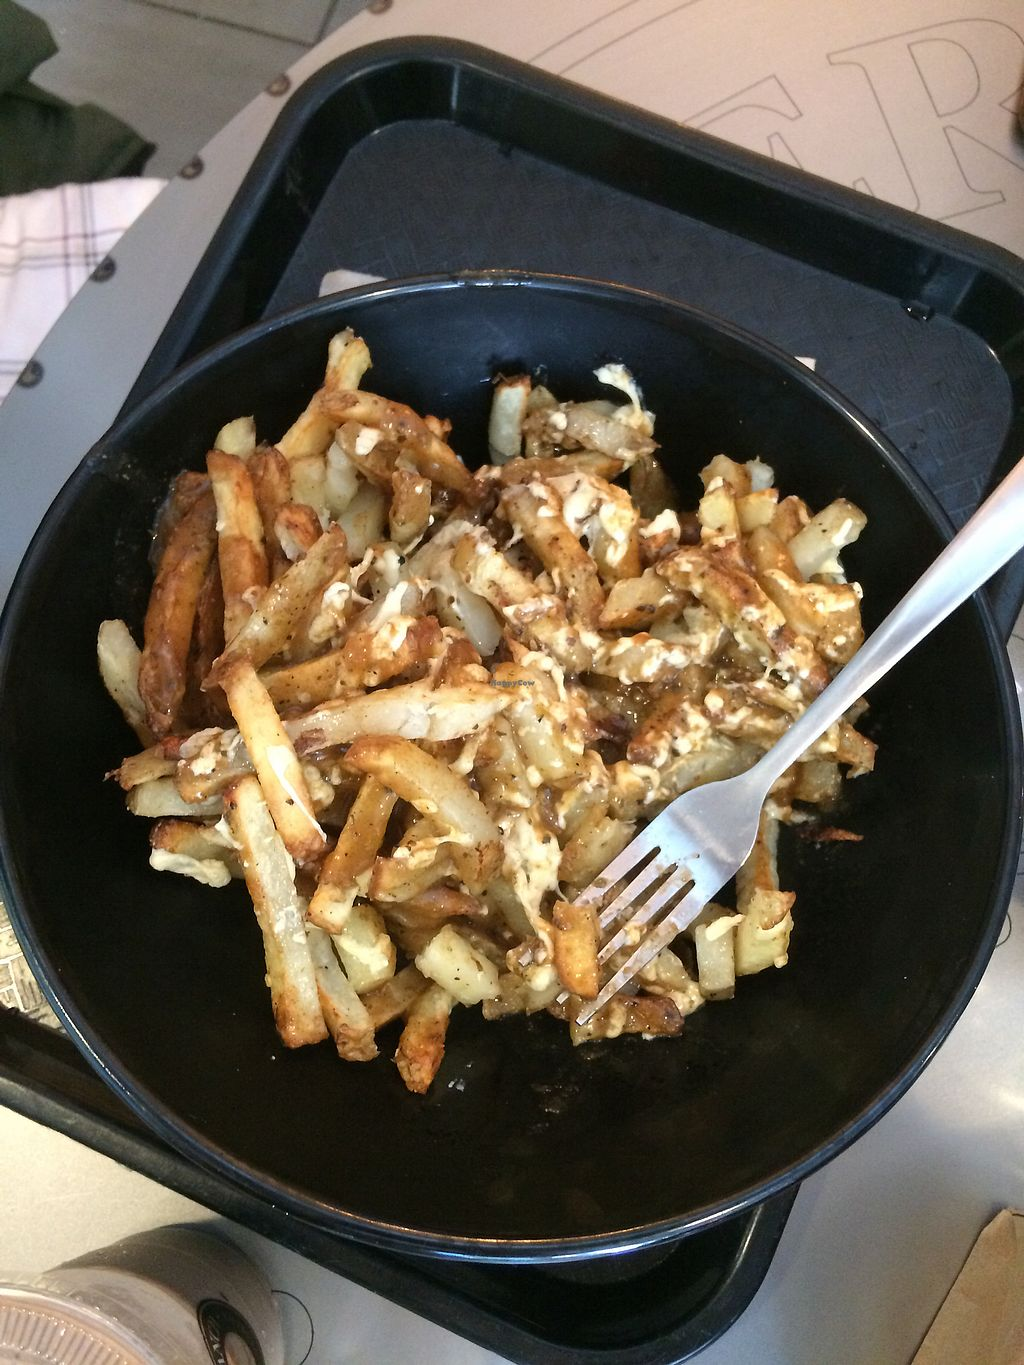 """Photo of Copper Branch - Rene Levesque  by <a href=""""/members/profile/elkekrieger"""">elkekrieger</a> <br/>vegan Poutine (great flavor but slightly soggy)  <br/> August 19, 2017  - <a href='/contact/abuse/image/58602/294487'>Report</a>"""